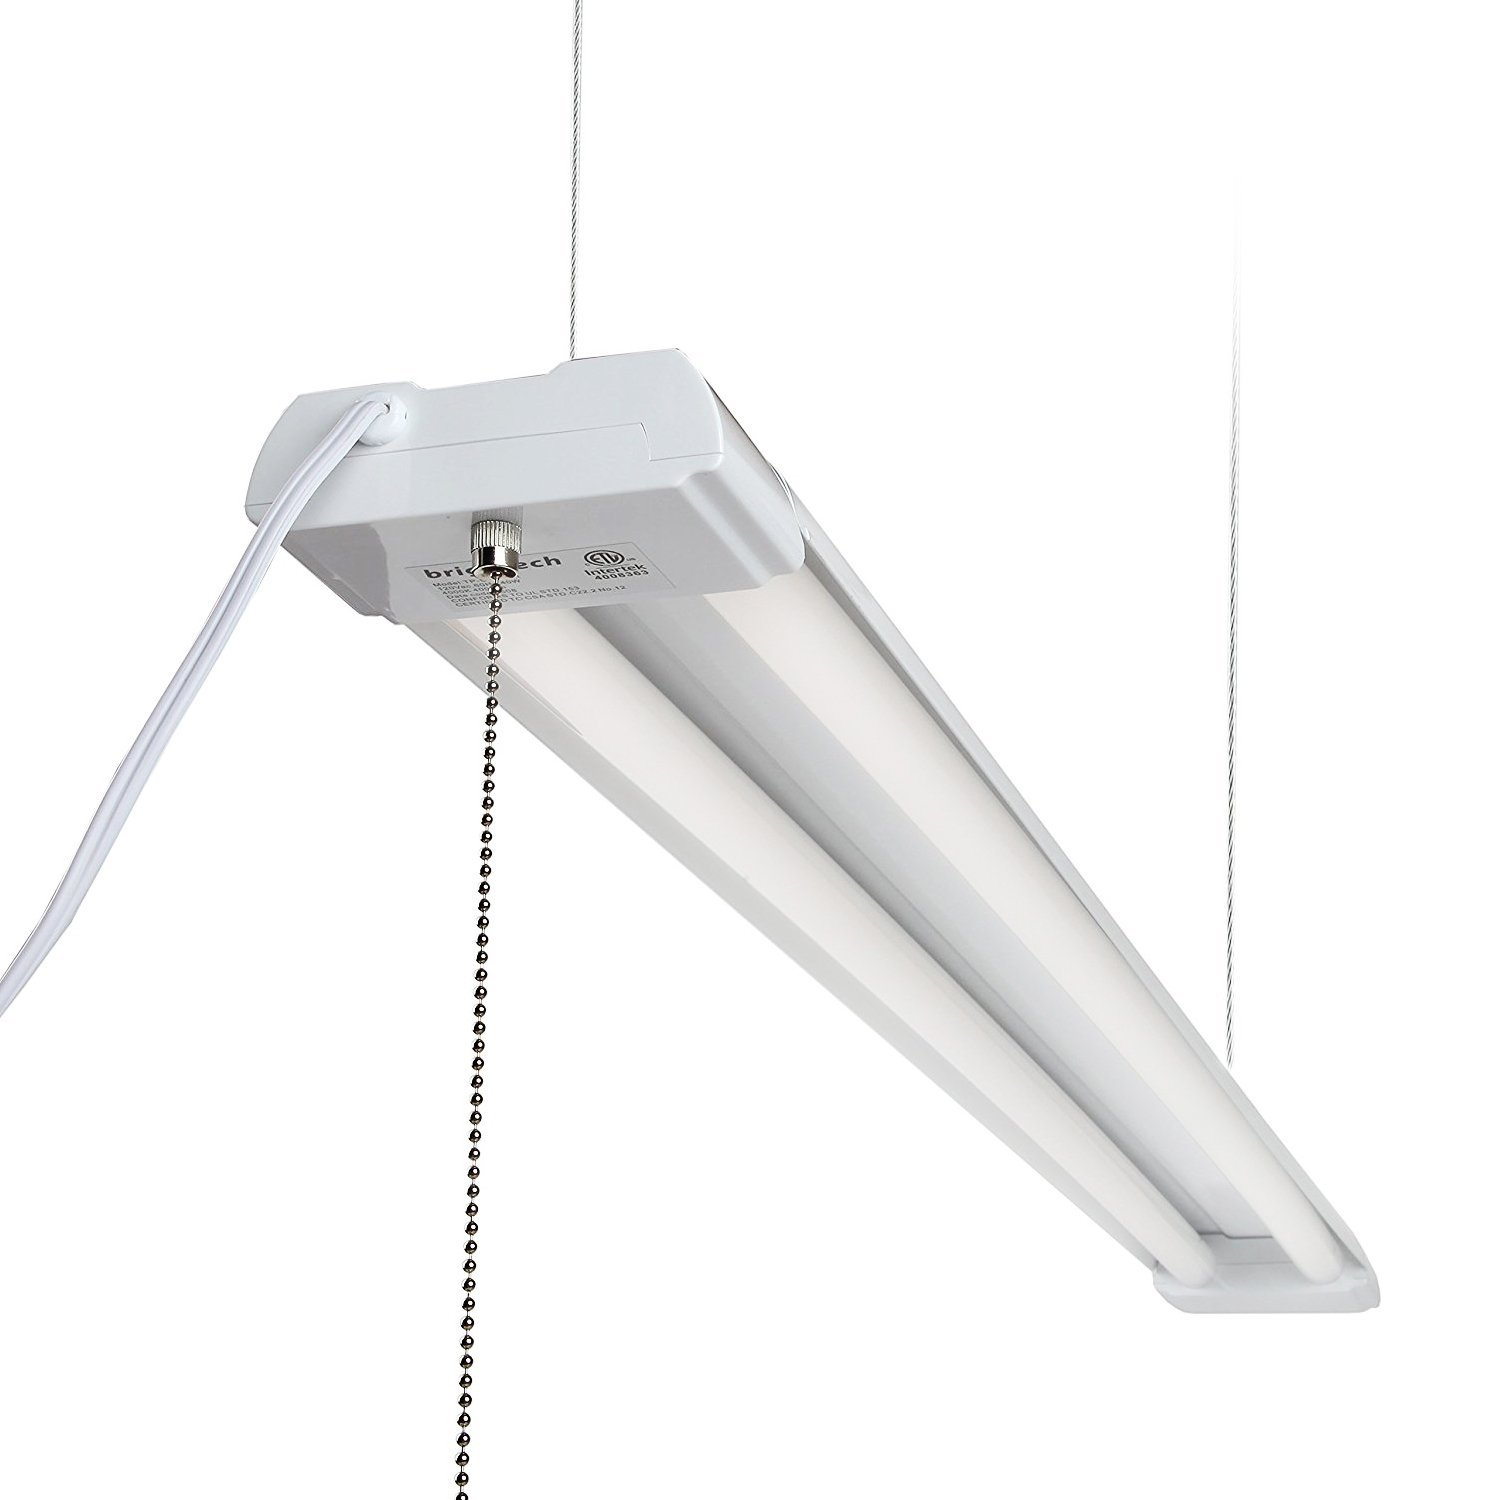 Brightech – LightPRO LED Shop Light – Installs Above Workbenches – More Energy-Efficient than Fluorescent Overhead Lighting – 40-Watt LED Equivalent to 100-Watt Brightness